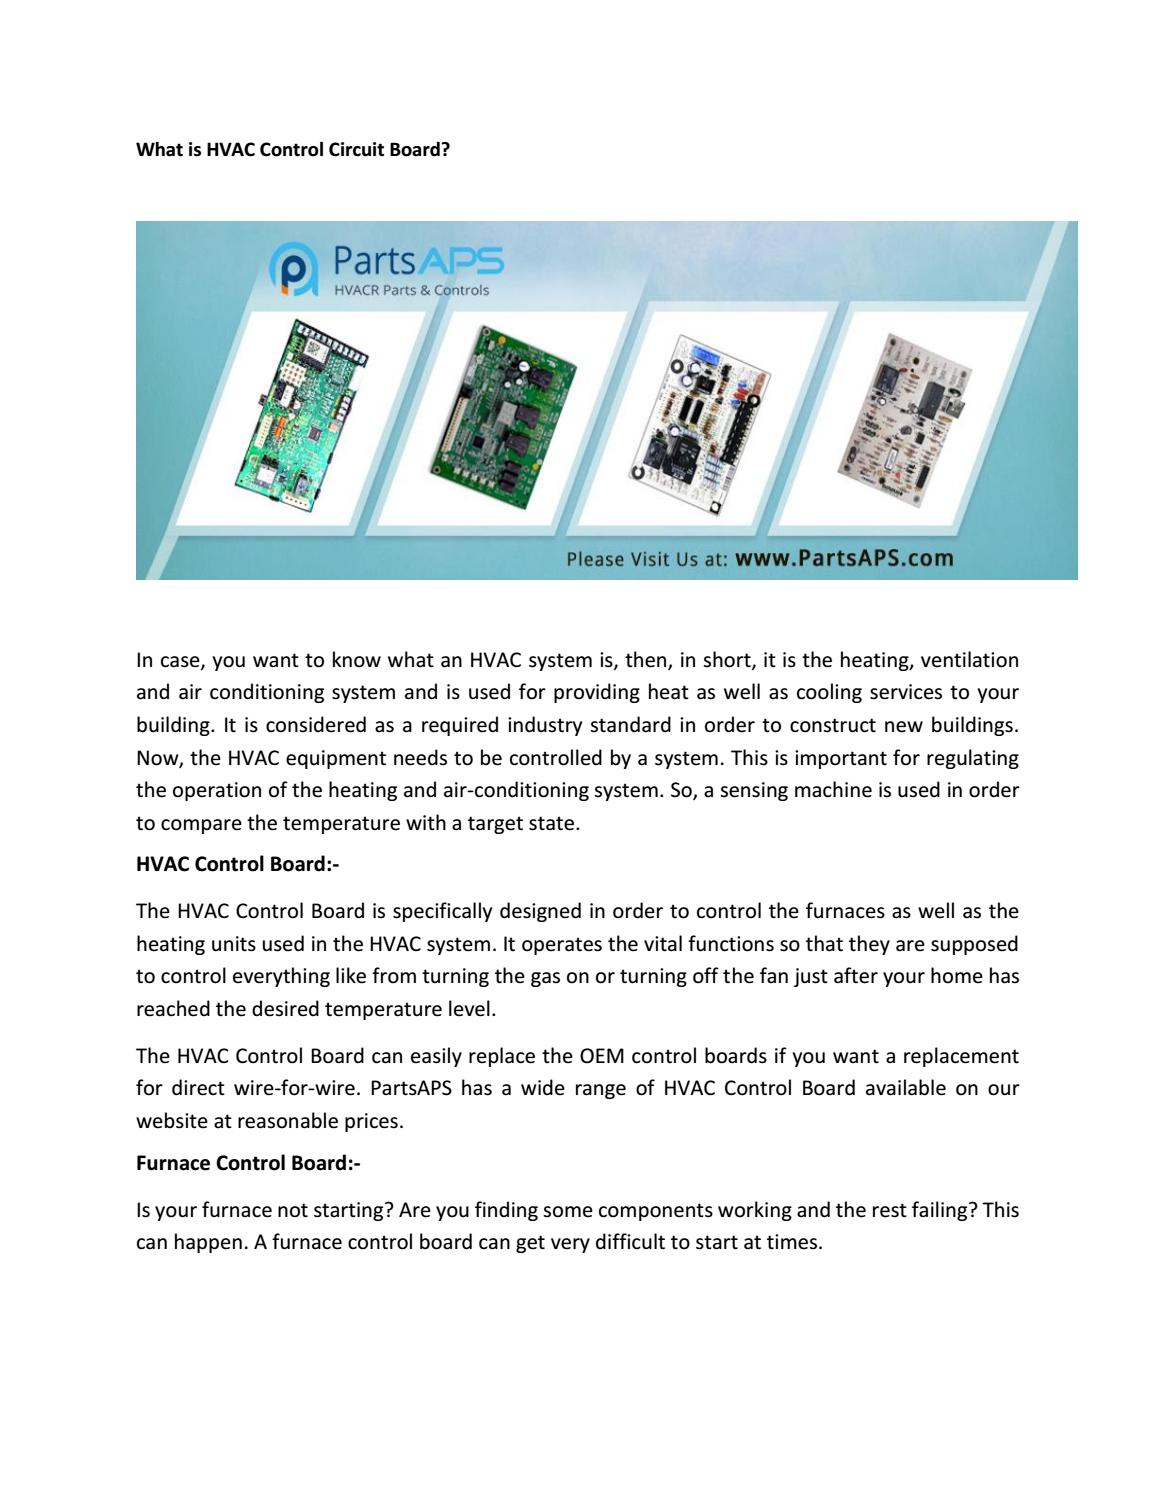 What Is Hvac Control Circuit Board Air Conditioner Parts A Used For Refrigerator Partsaps By Issuu